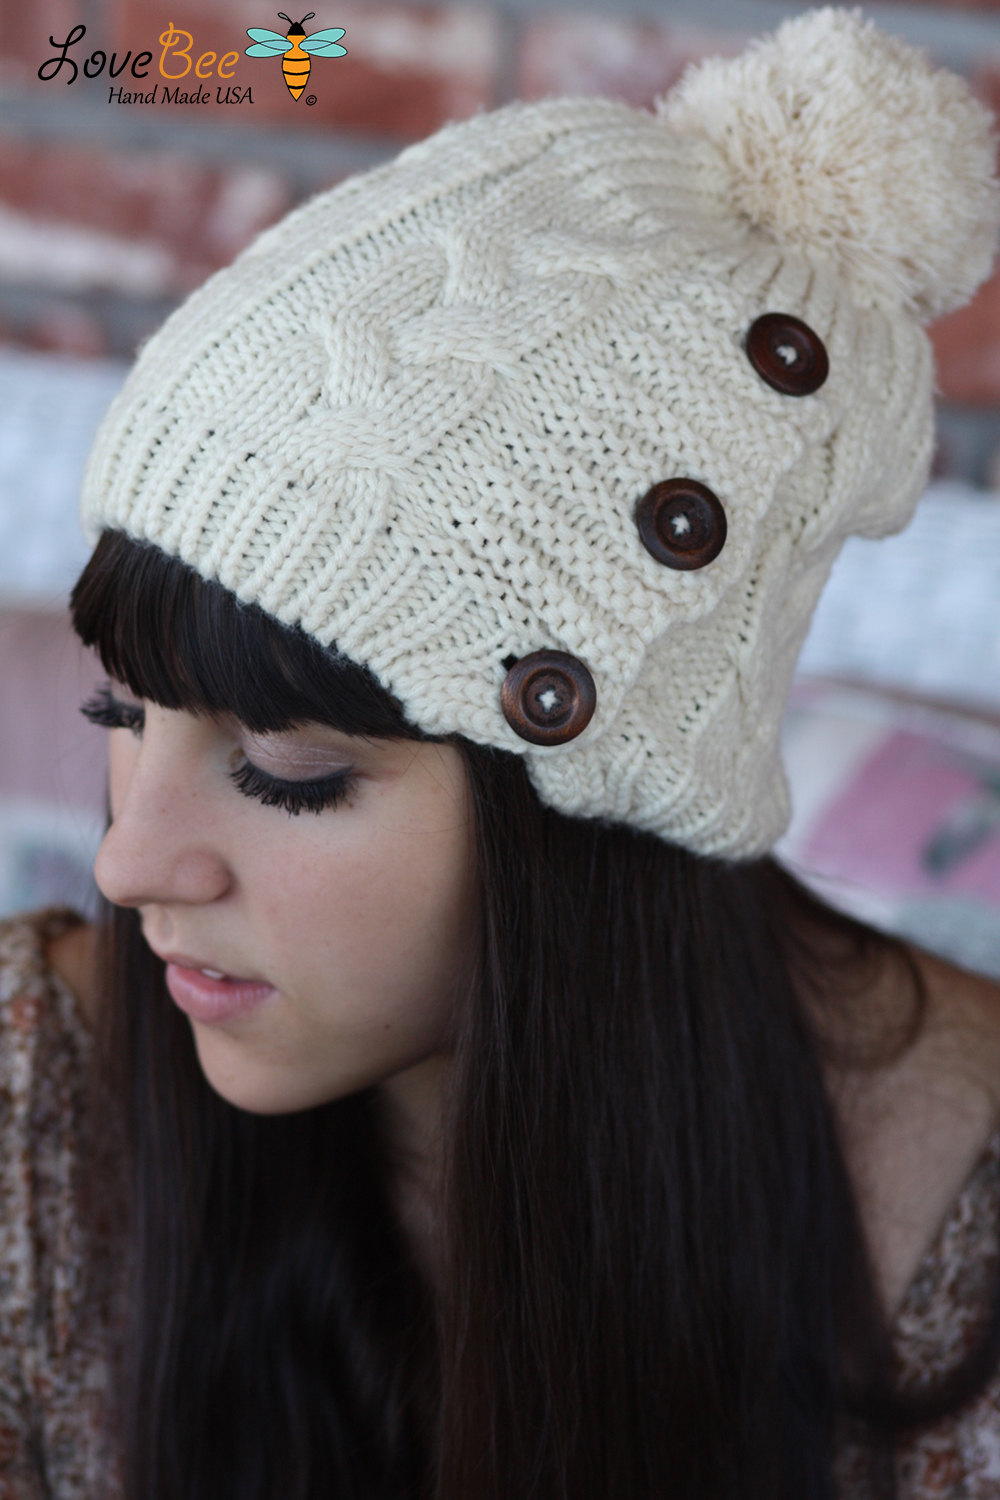 Beanie Hat- , Ivory, Pom Pom , Wood buttons, Cable Knit, Knitted, Crochet, ivory lace, Christmas Gift.